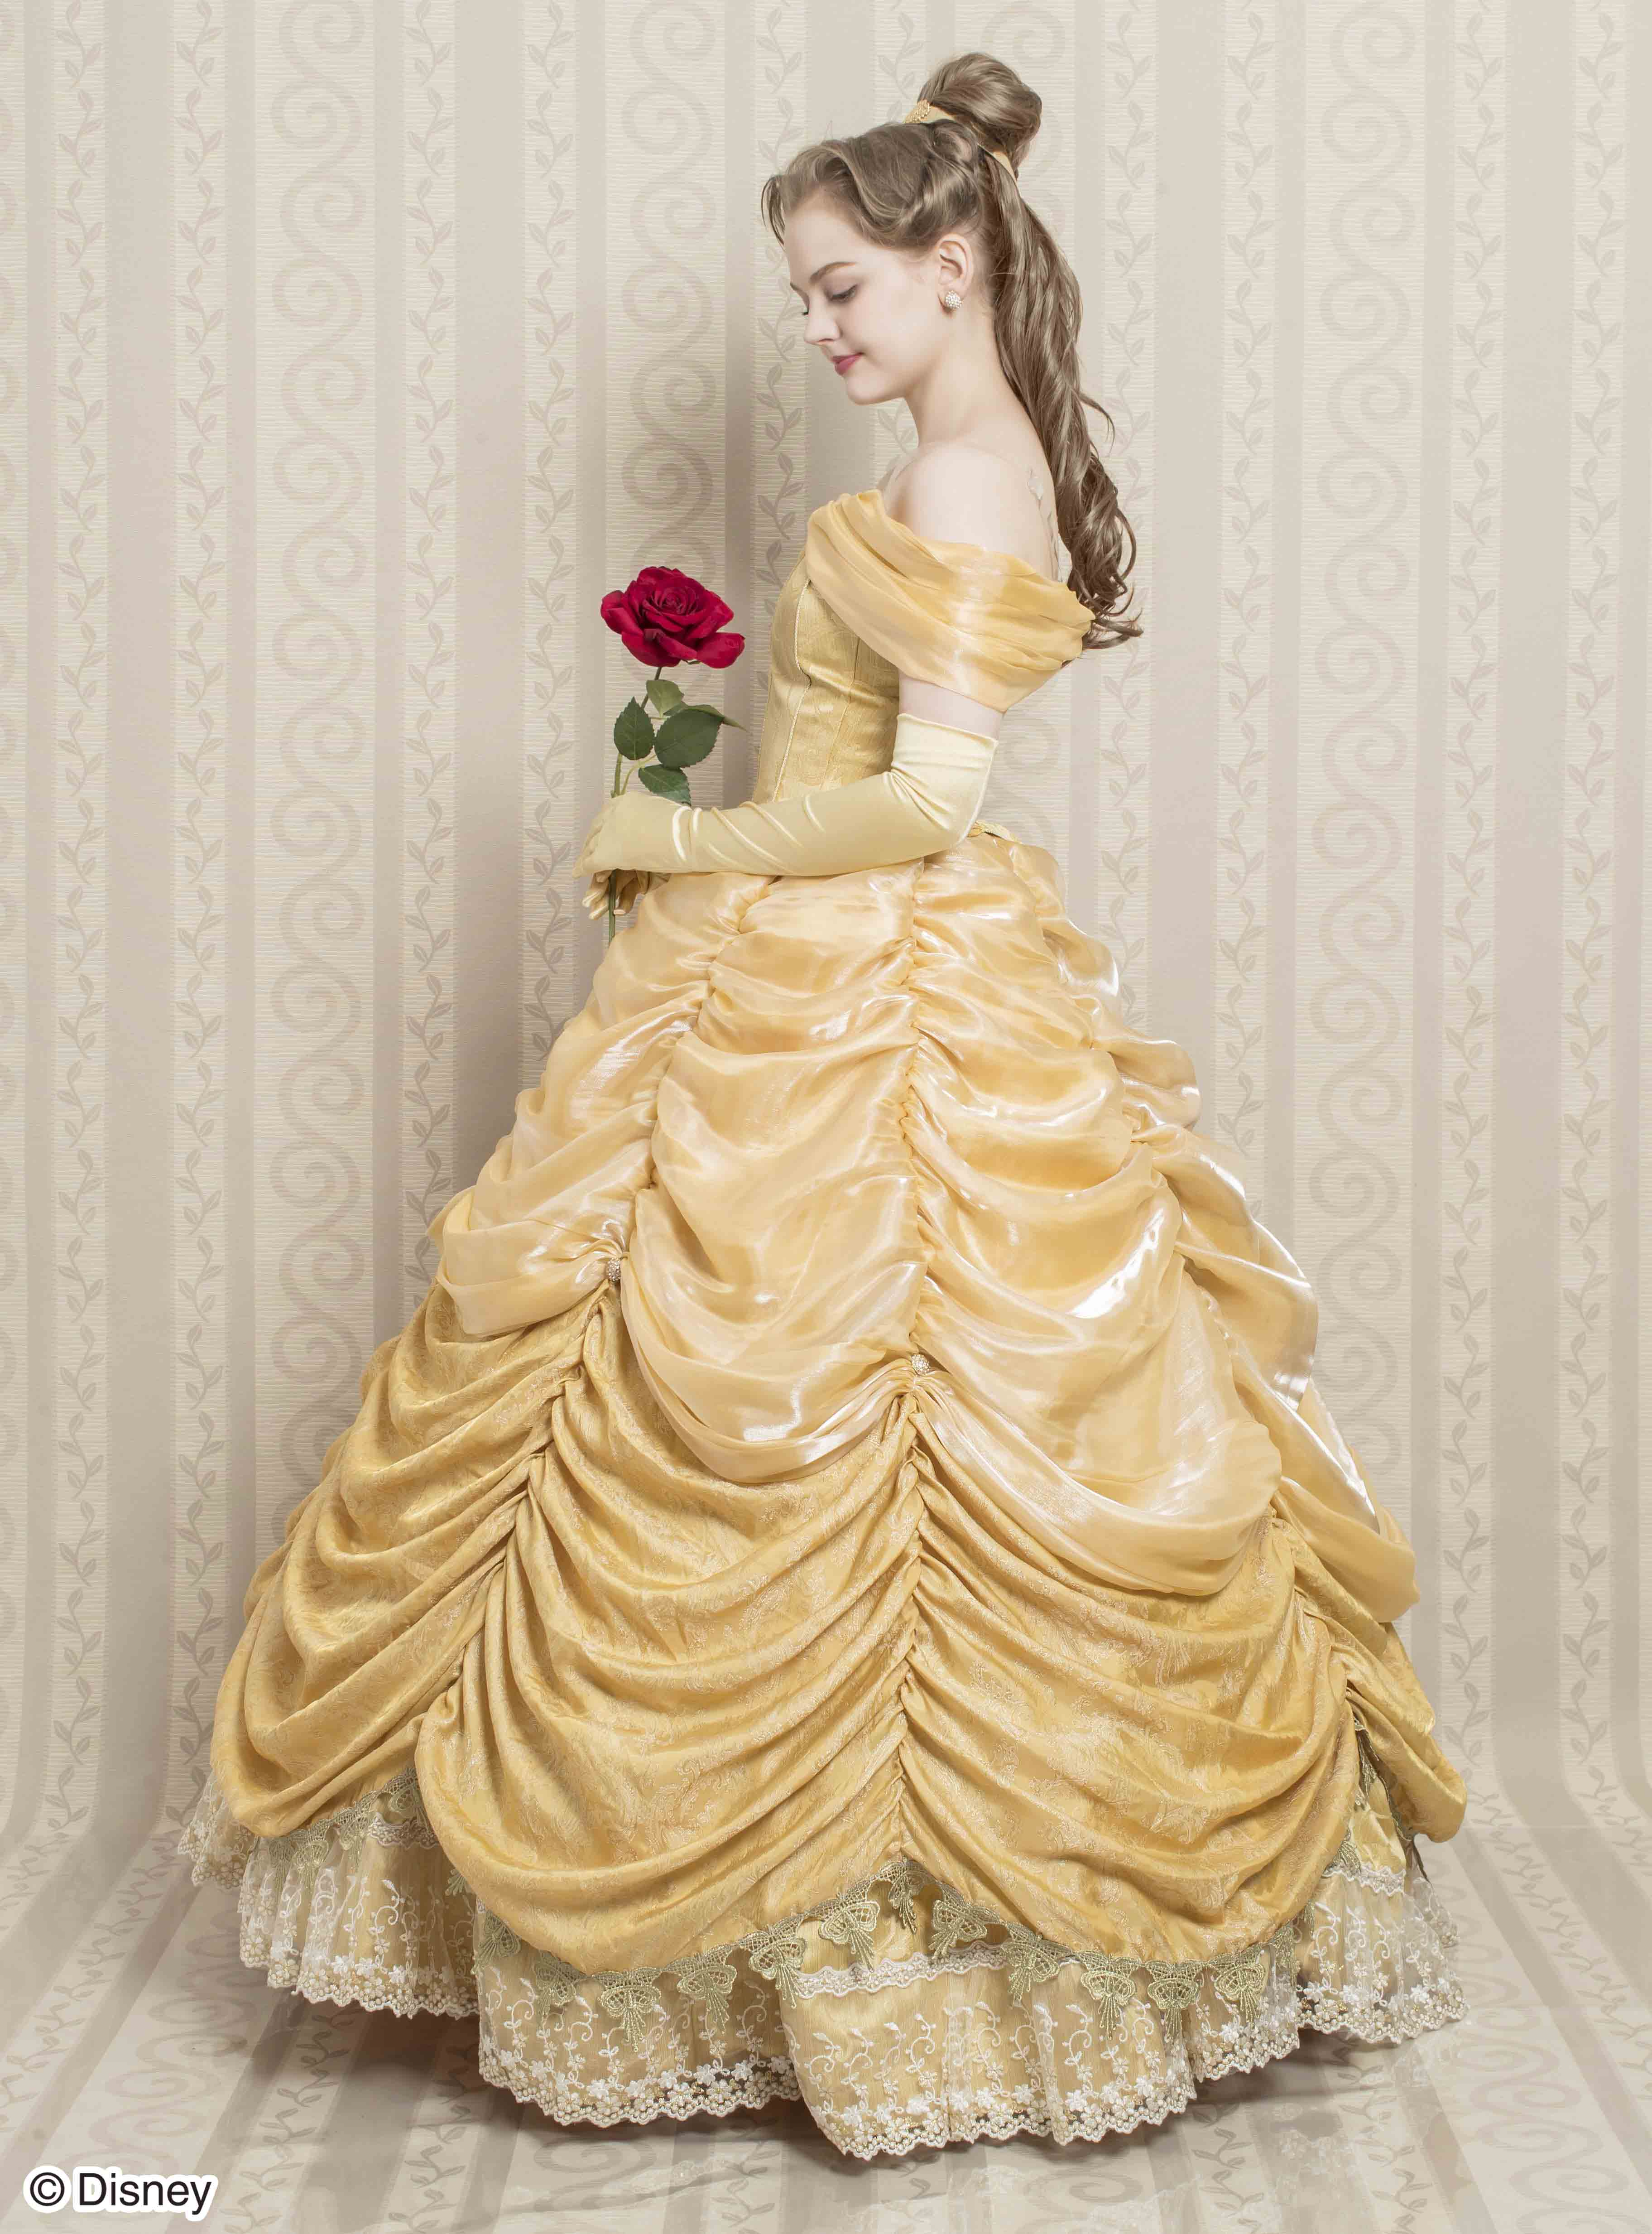 Tale As Old As Time Dress (Beauty and the Beast ver.)